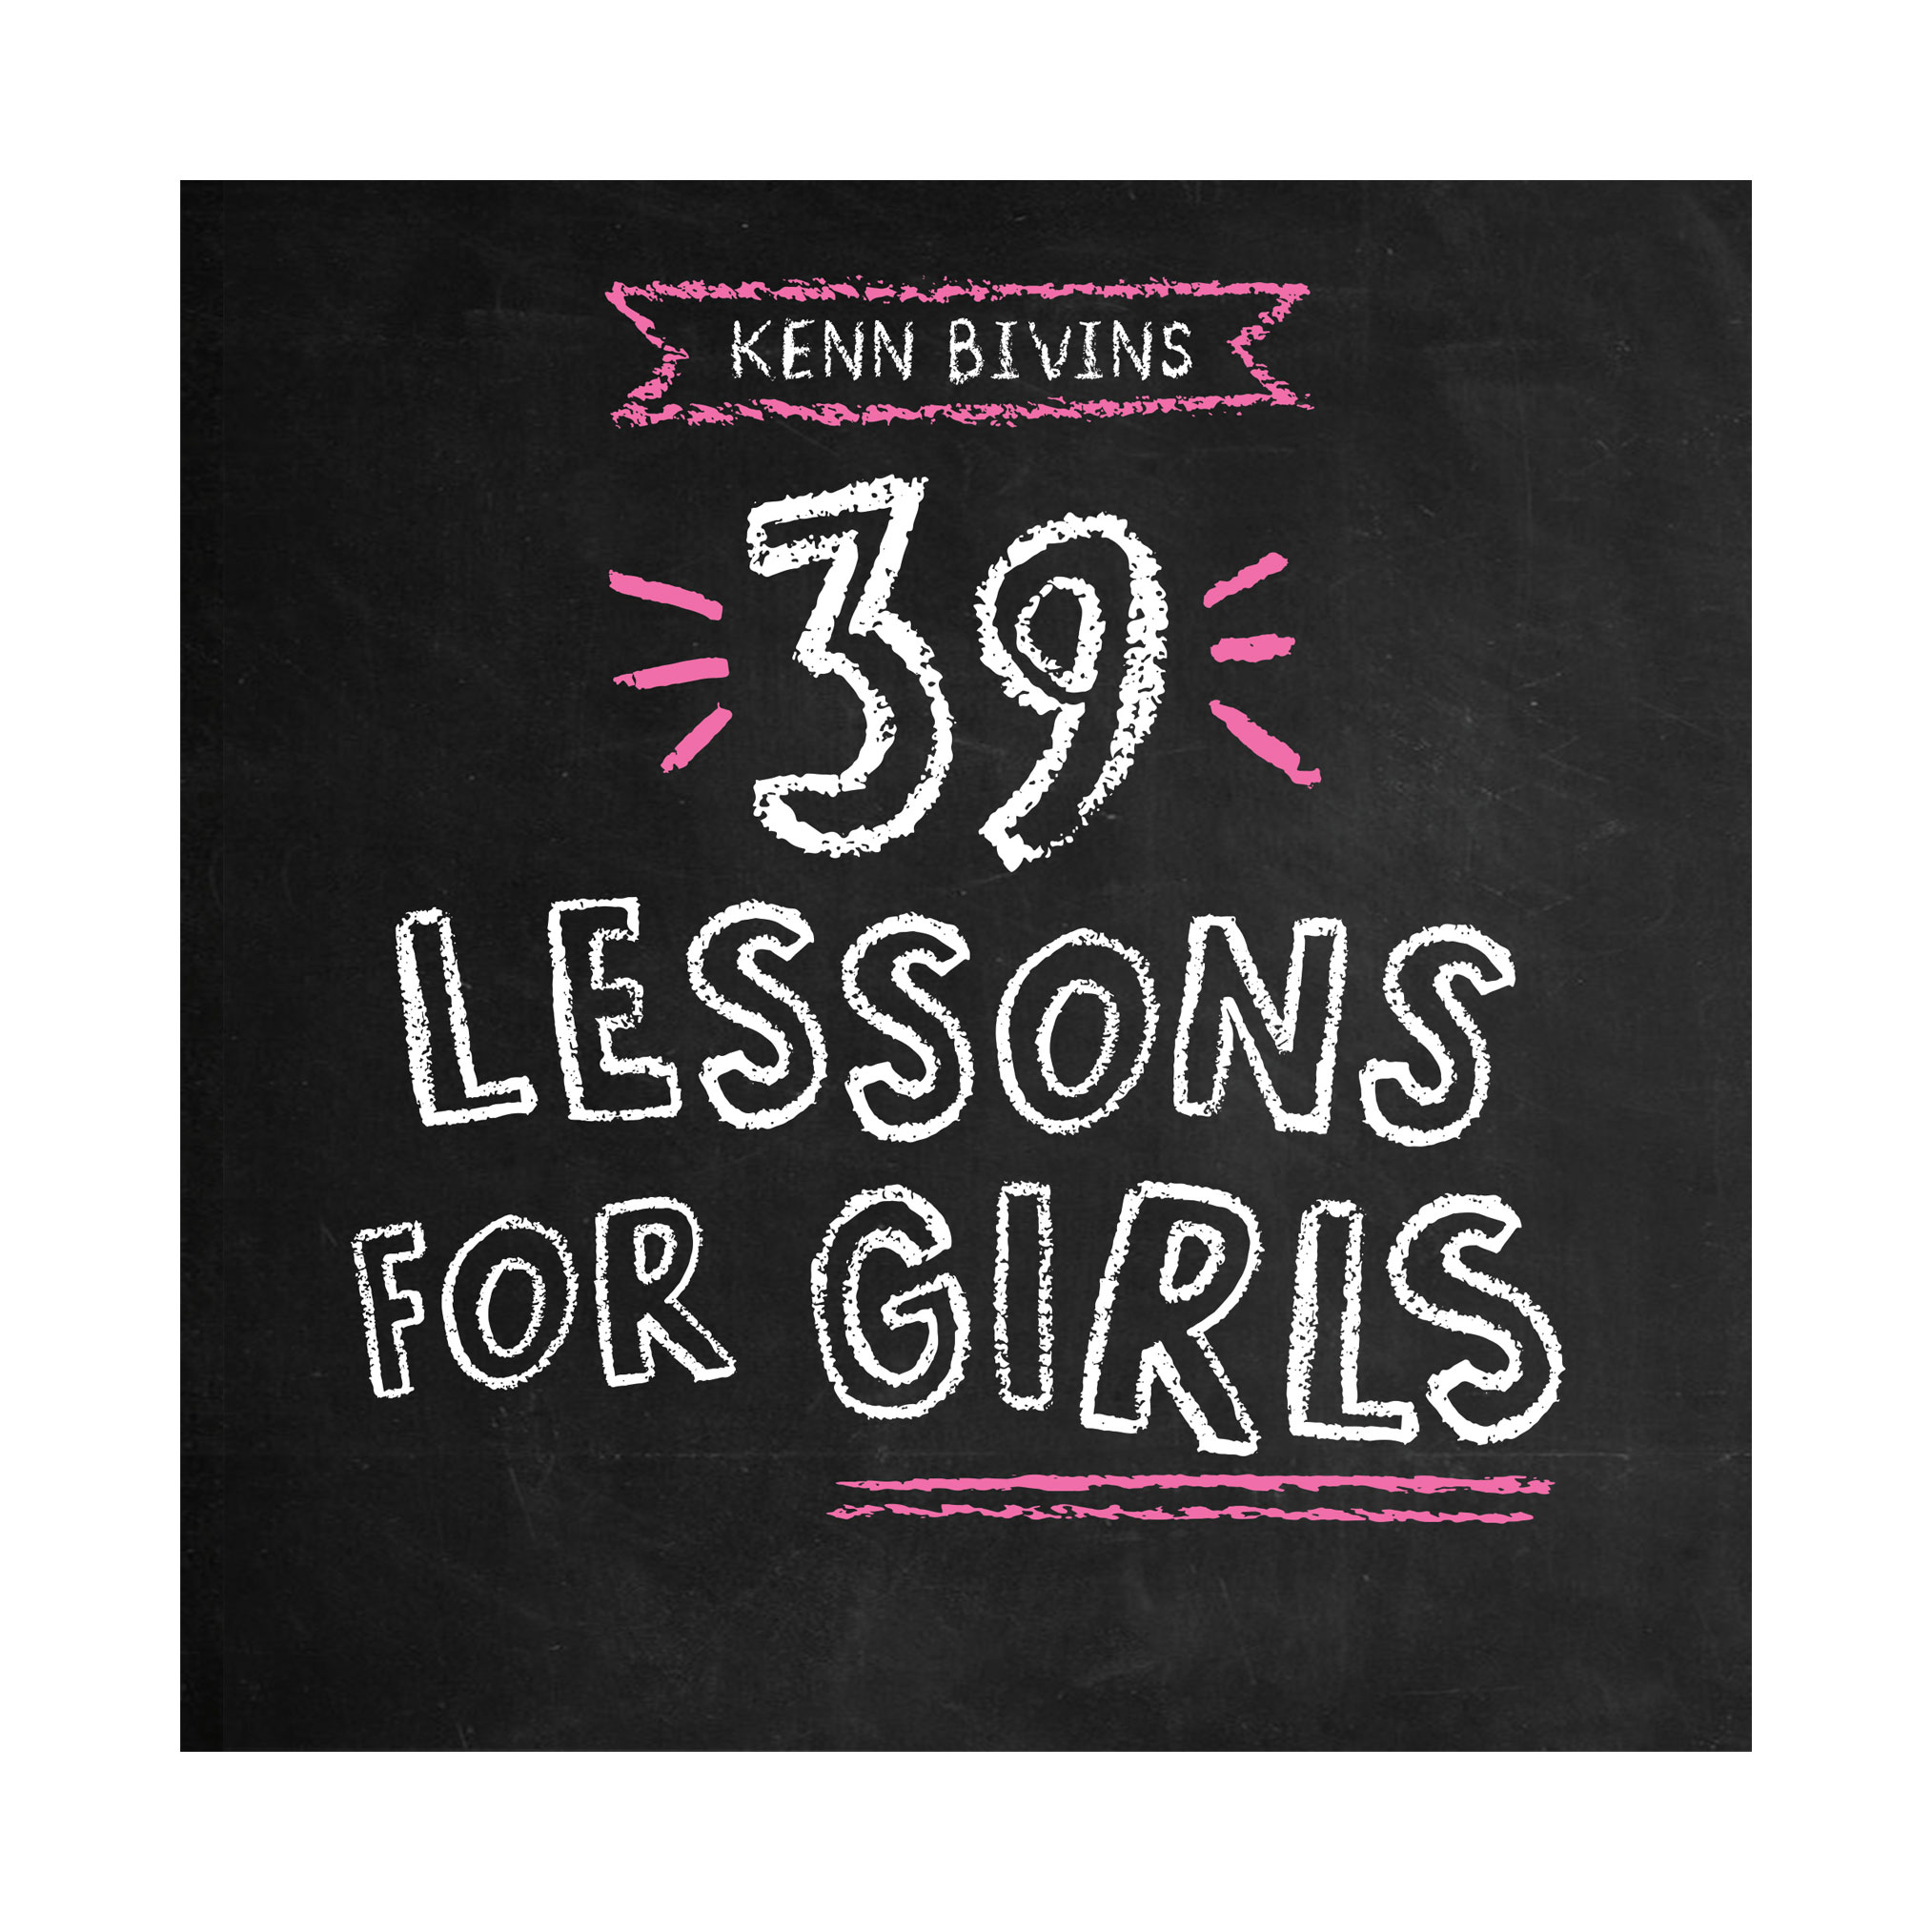 39 Lessons front